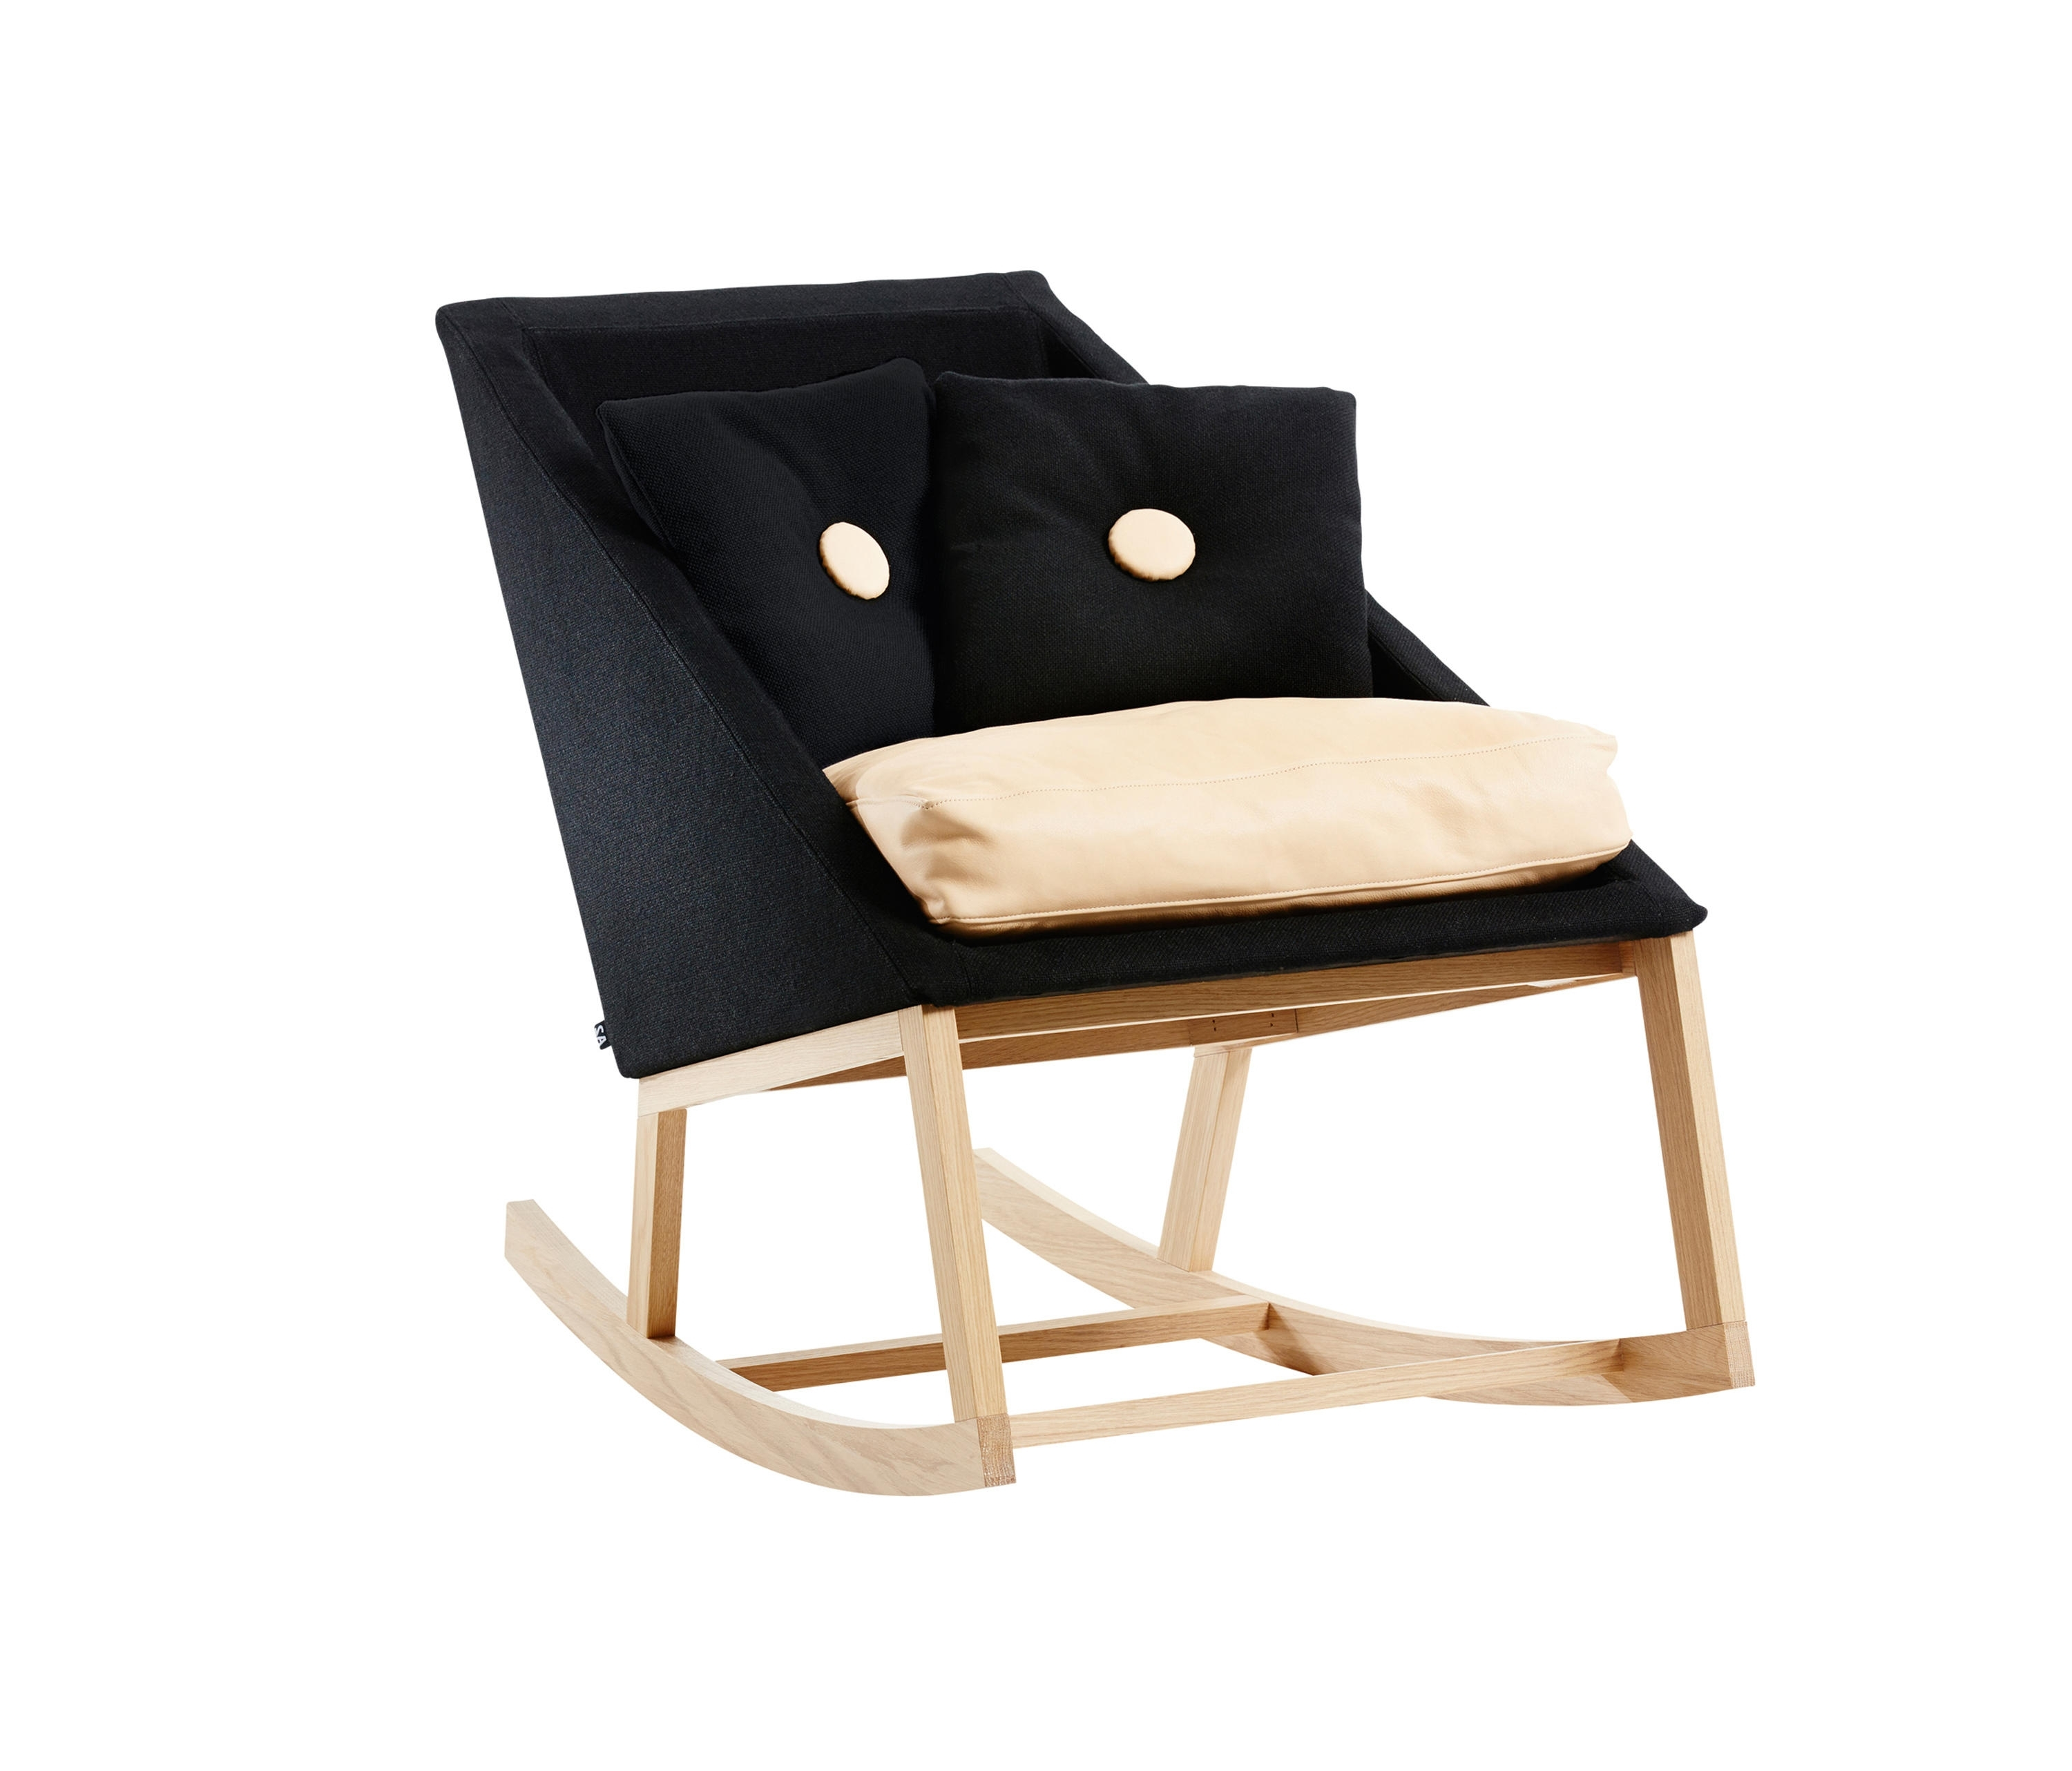 Ordinaire Most Recently Released Rocking Chairs At Target Throughout Wooden Rocking  Chairs Near Me Rocking Chair Target